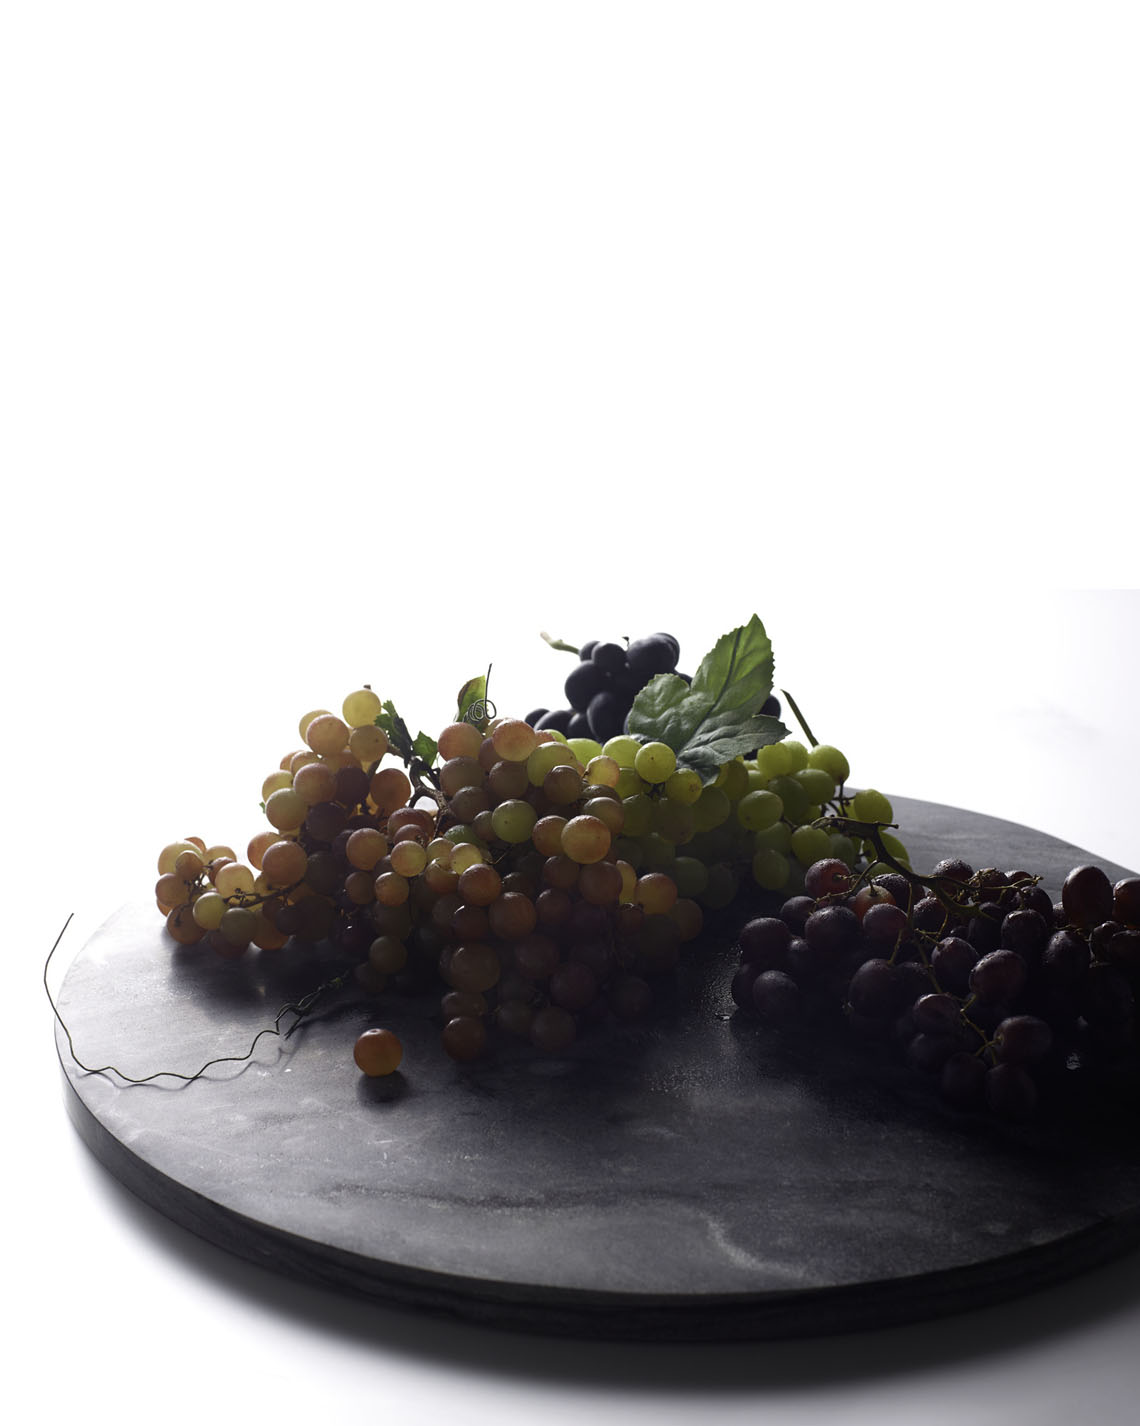 food stylist in San Francisco - Grapes Grapeseed extract Robert Valentine art director - Skin Rx advertising photographed by Laurie Frankel photographer